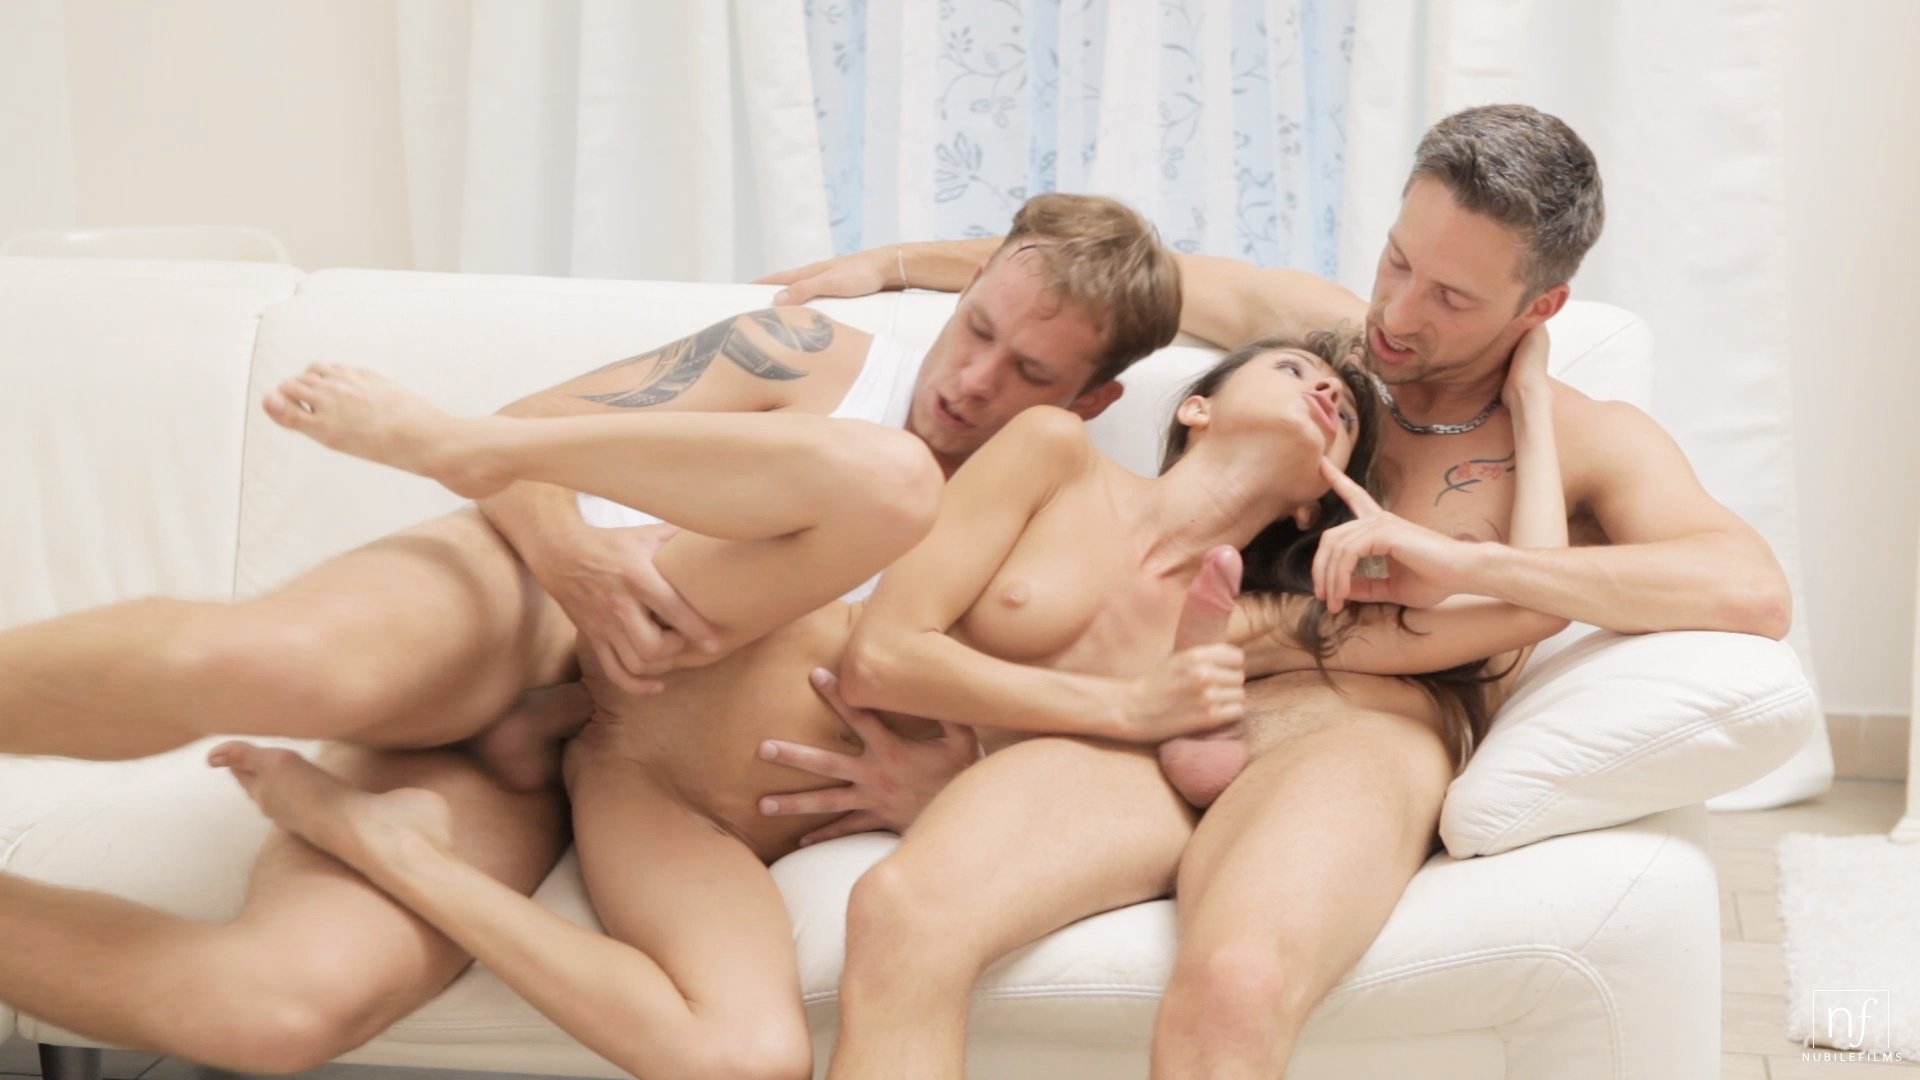 What does the bible say about sex